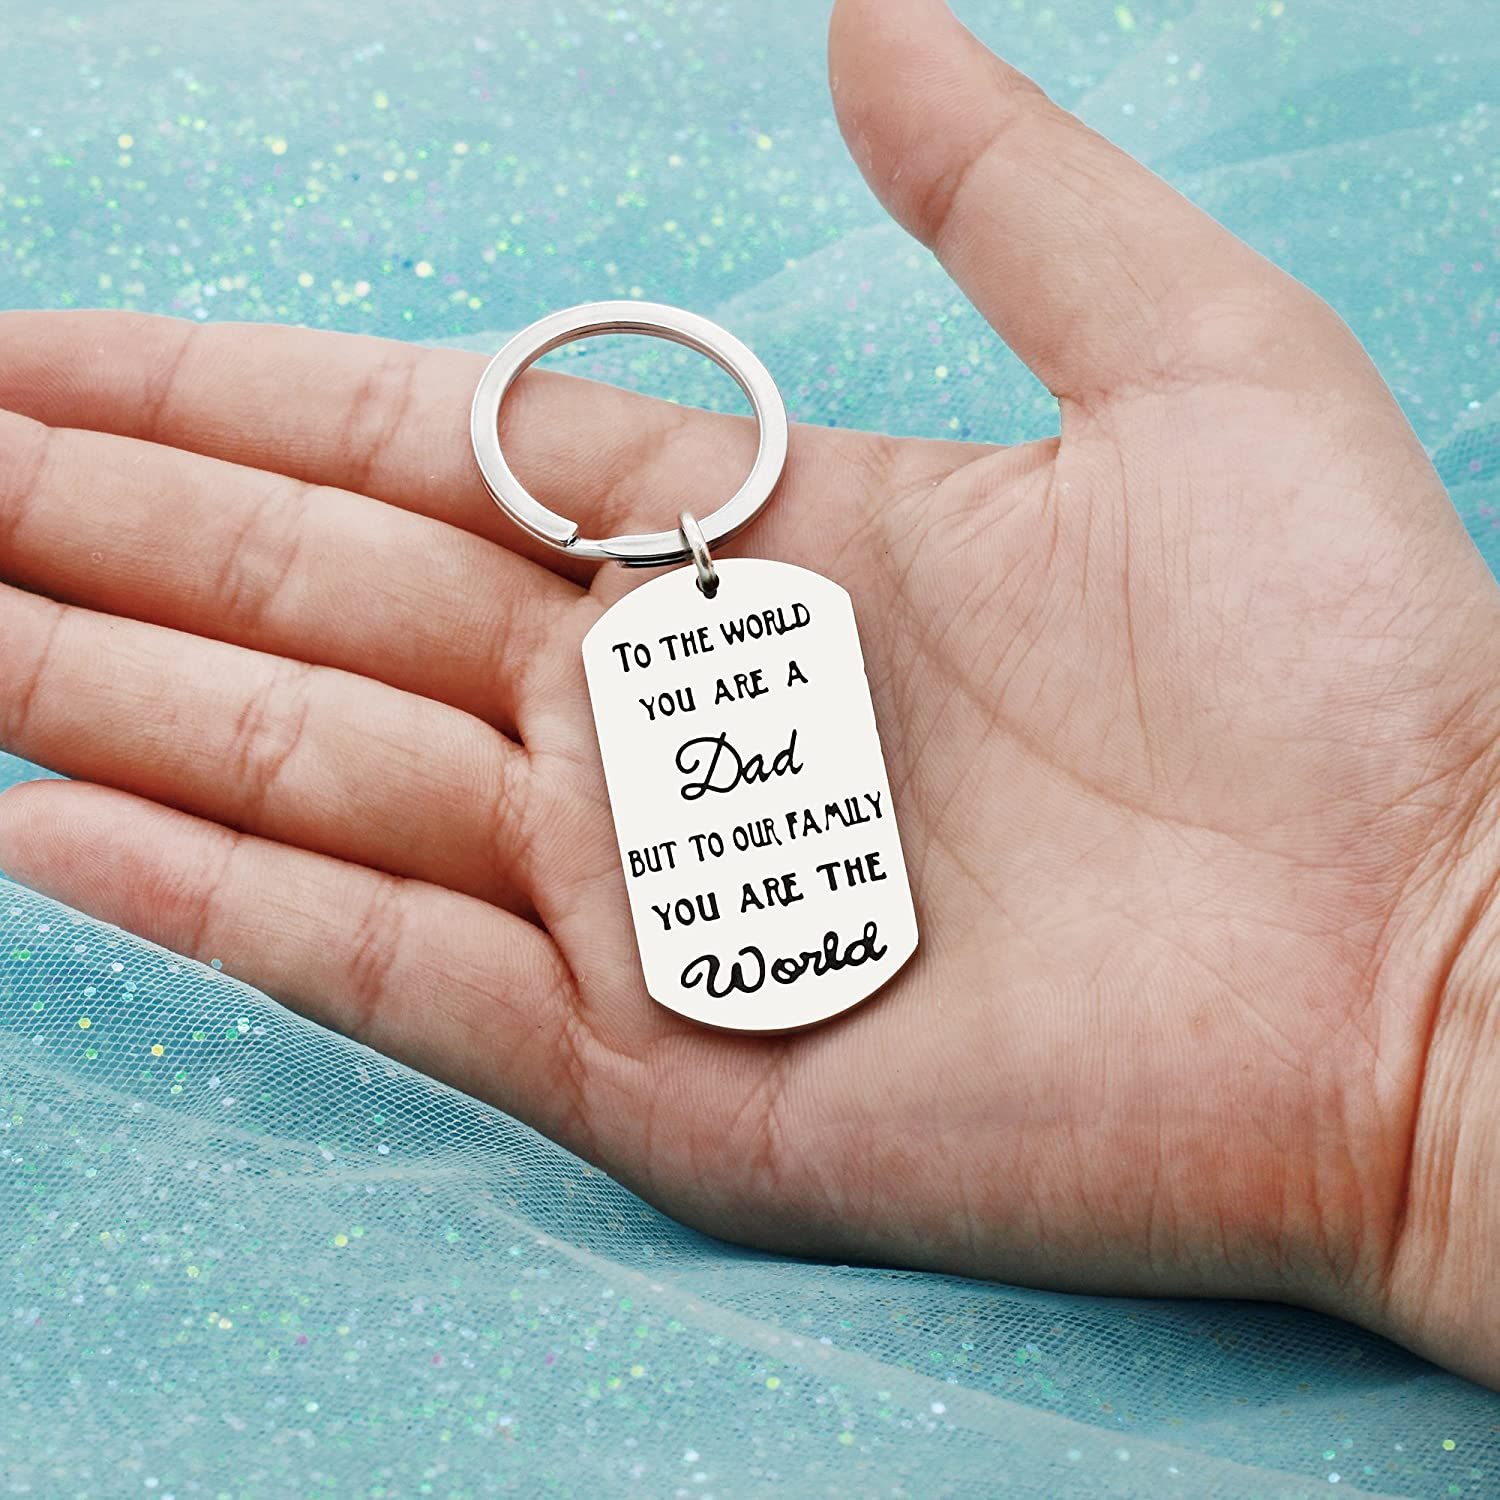 Father Key Chain Ring Father Day Gifts Dad Papa Family Key Holder - to The World You are A Dad But to Our Family You are The World AGR8T